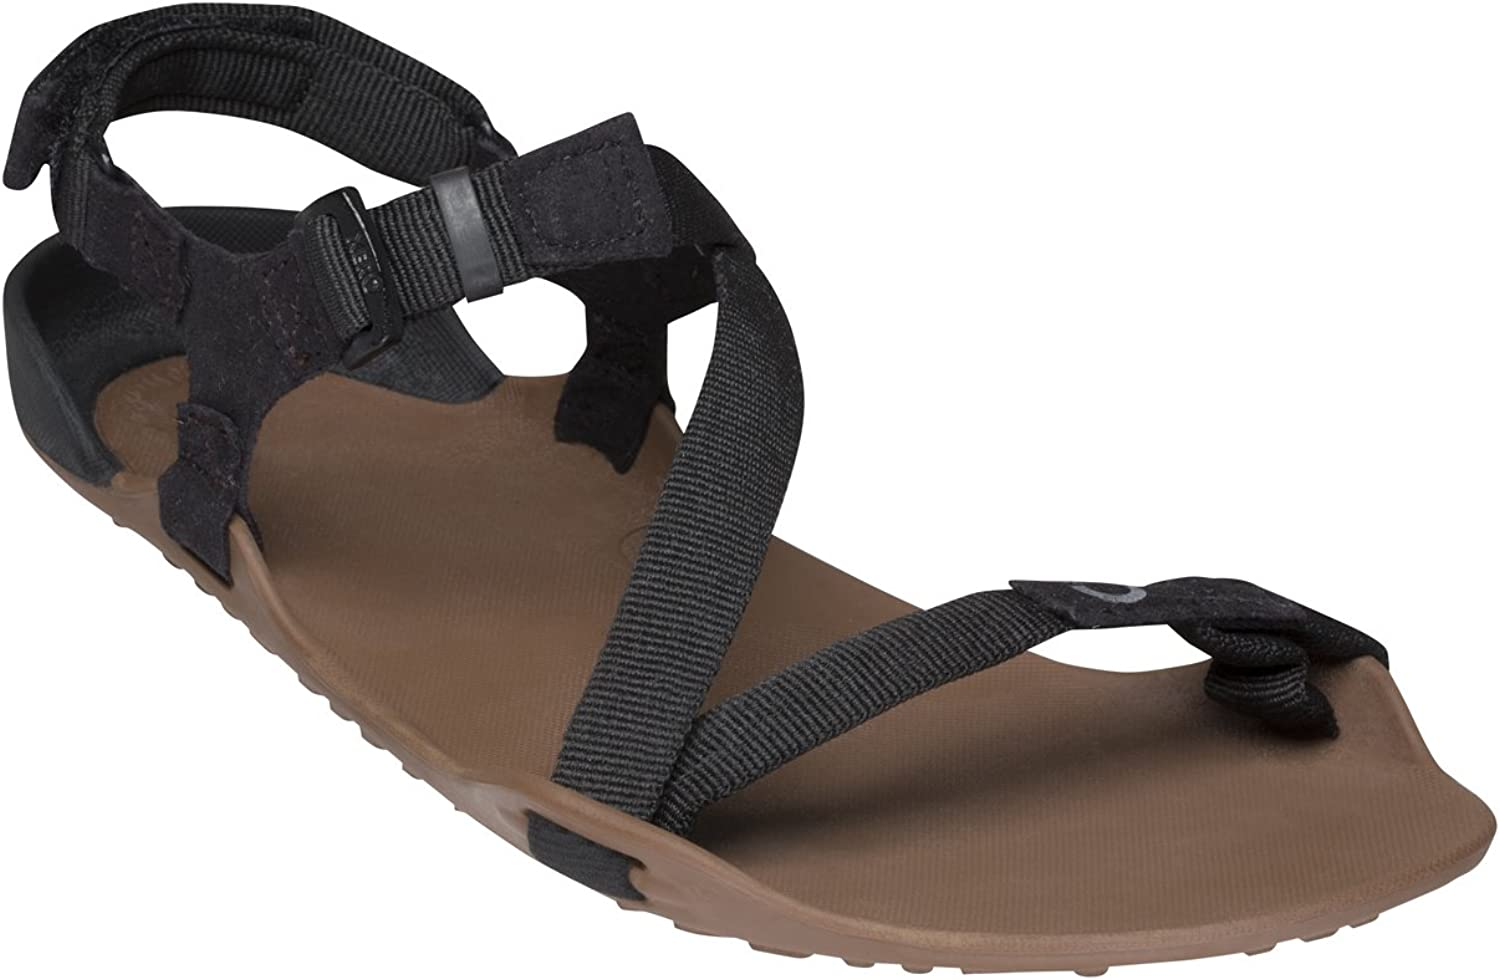 Xero Shoes Z-Trek - Women's Minimalist Barefoot-Inspired Sport Sandal - Hiking, Trail, Running, Walking